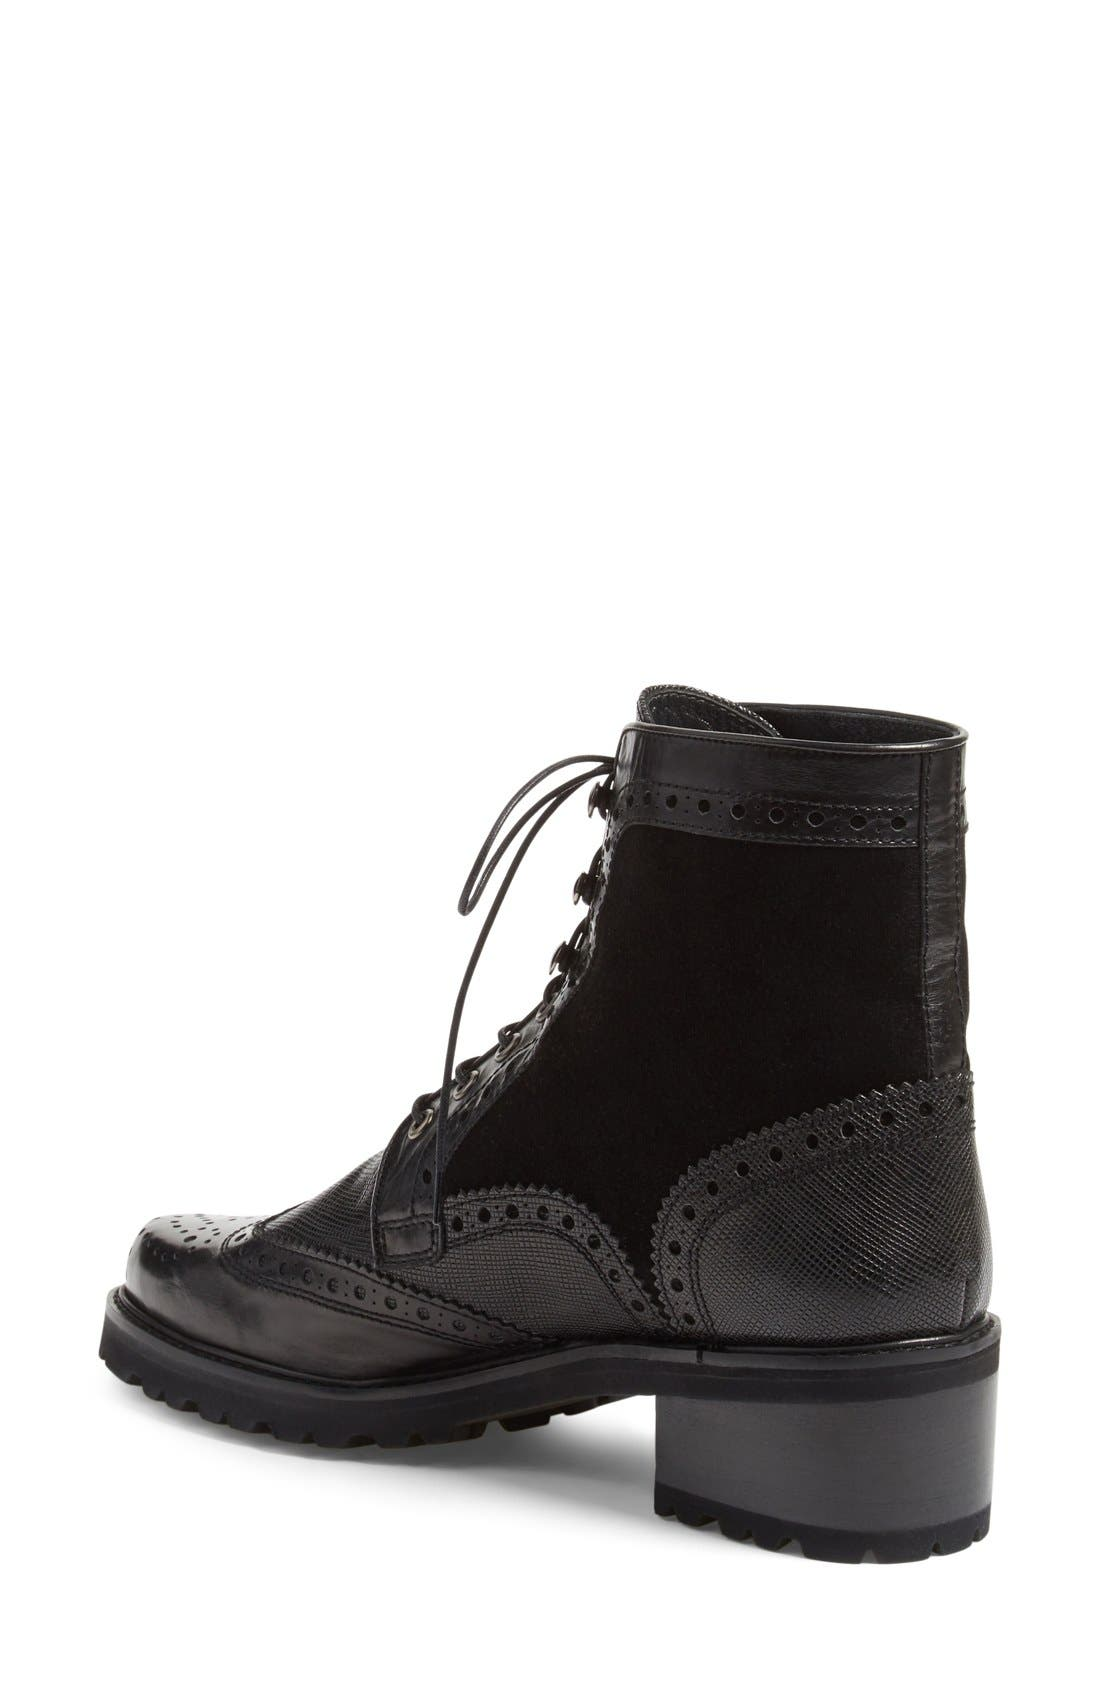 Alternate Image 2  - Stuart Weitzman 'Brogen' Wingtip Boot (Women)